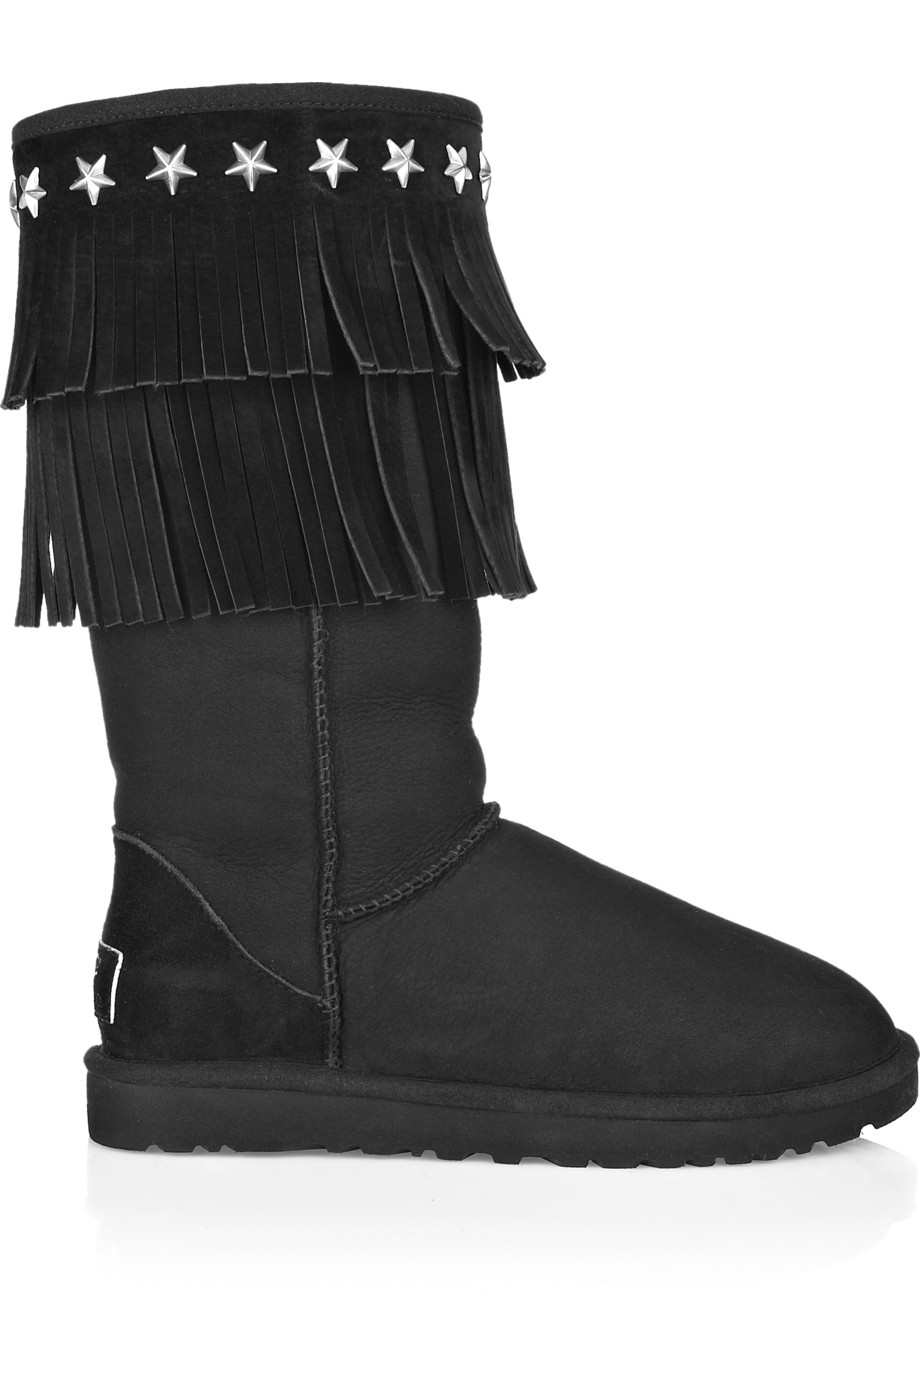 Jimmy Choo Sora Fringed Suede Boots in Black